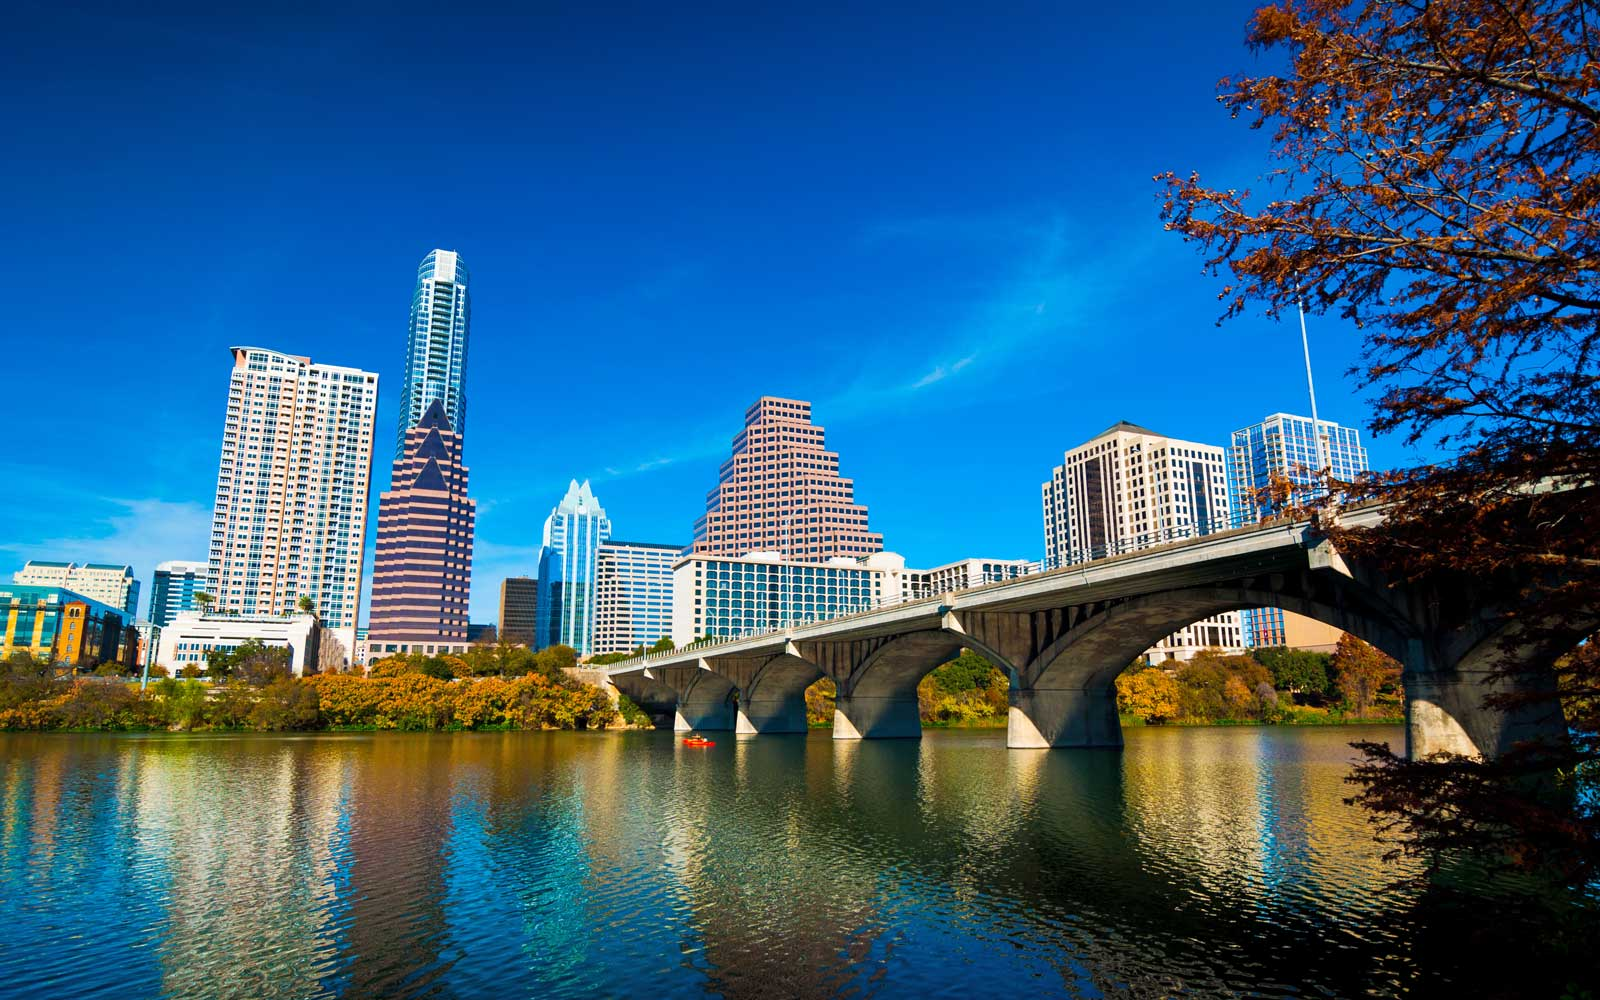 Visit cities like Austin for $20 one-way with Frontier's latest sale.